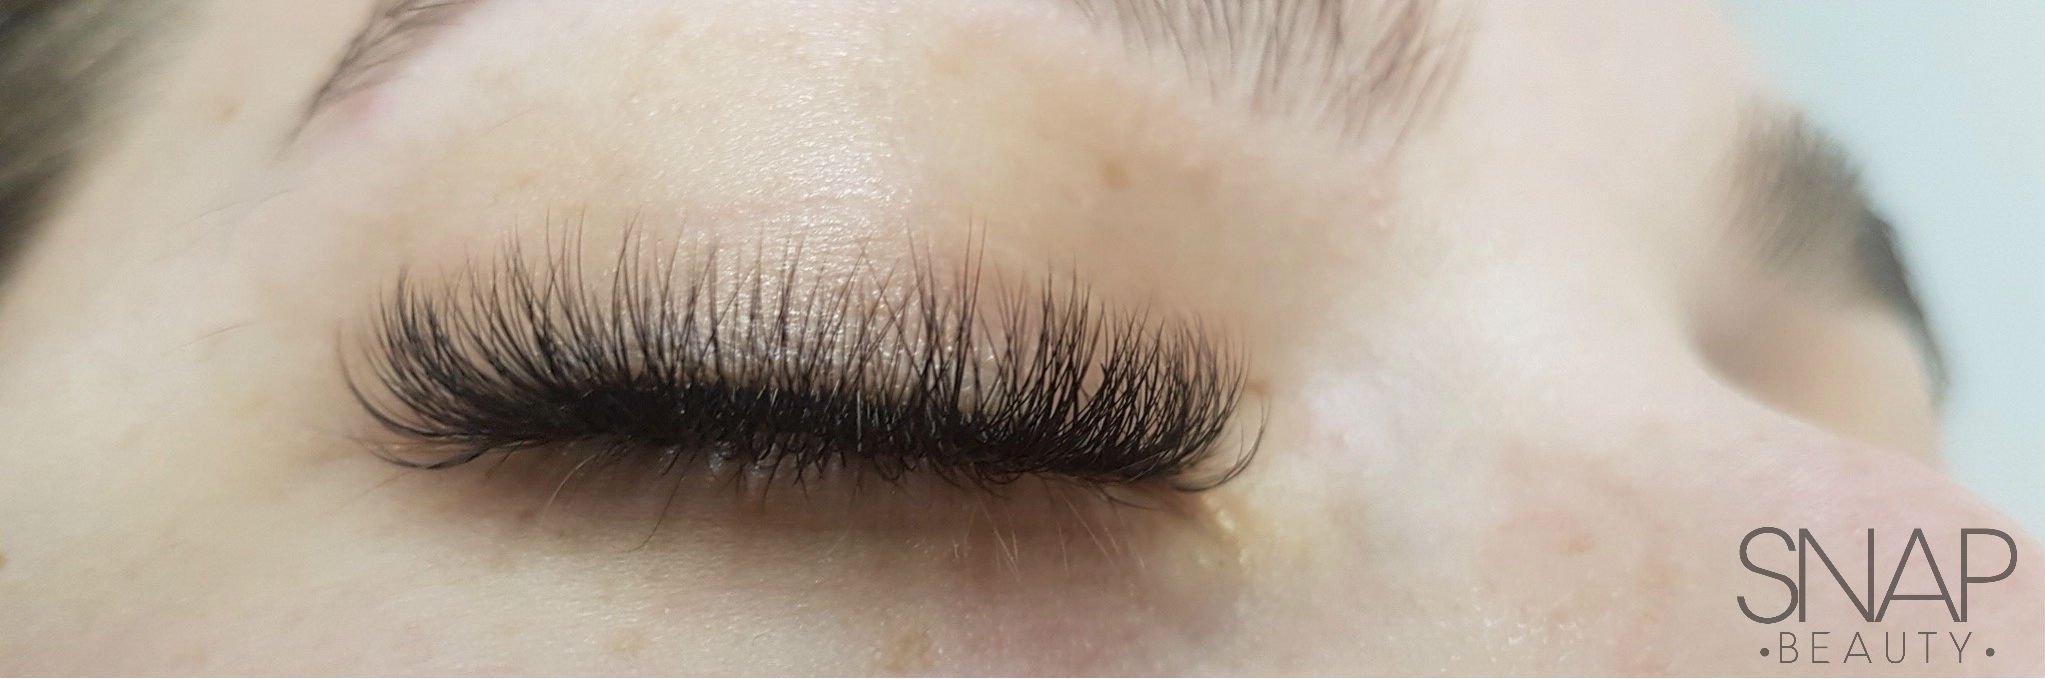 Eyelash Extensions Essex